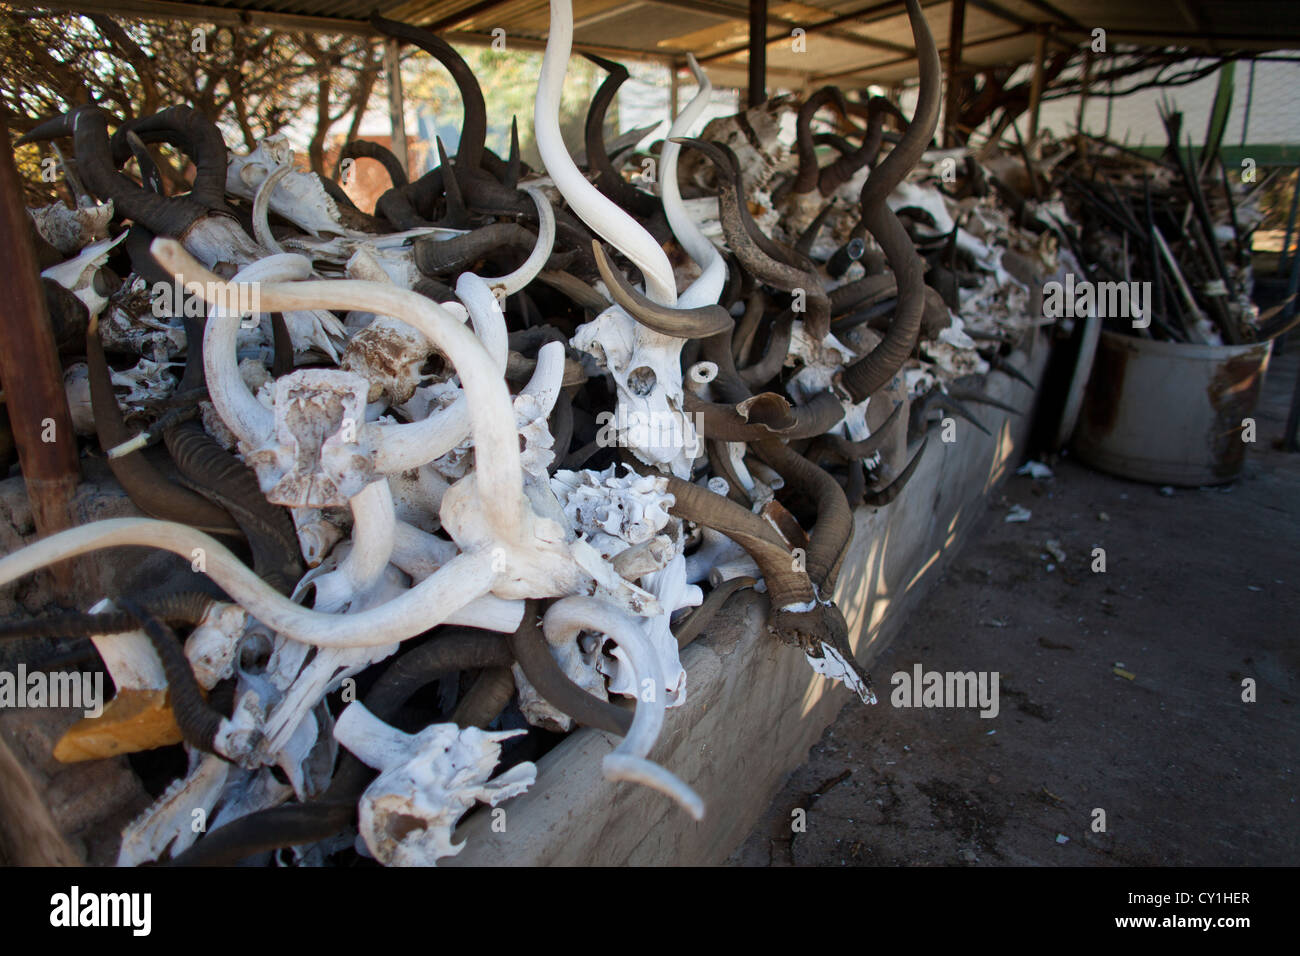 taxidermy. Hunters from US and Germany shoot wildlife and stuff it as a trophy in a taxidermy workshop in Namibia. - Stock Image